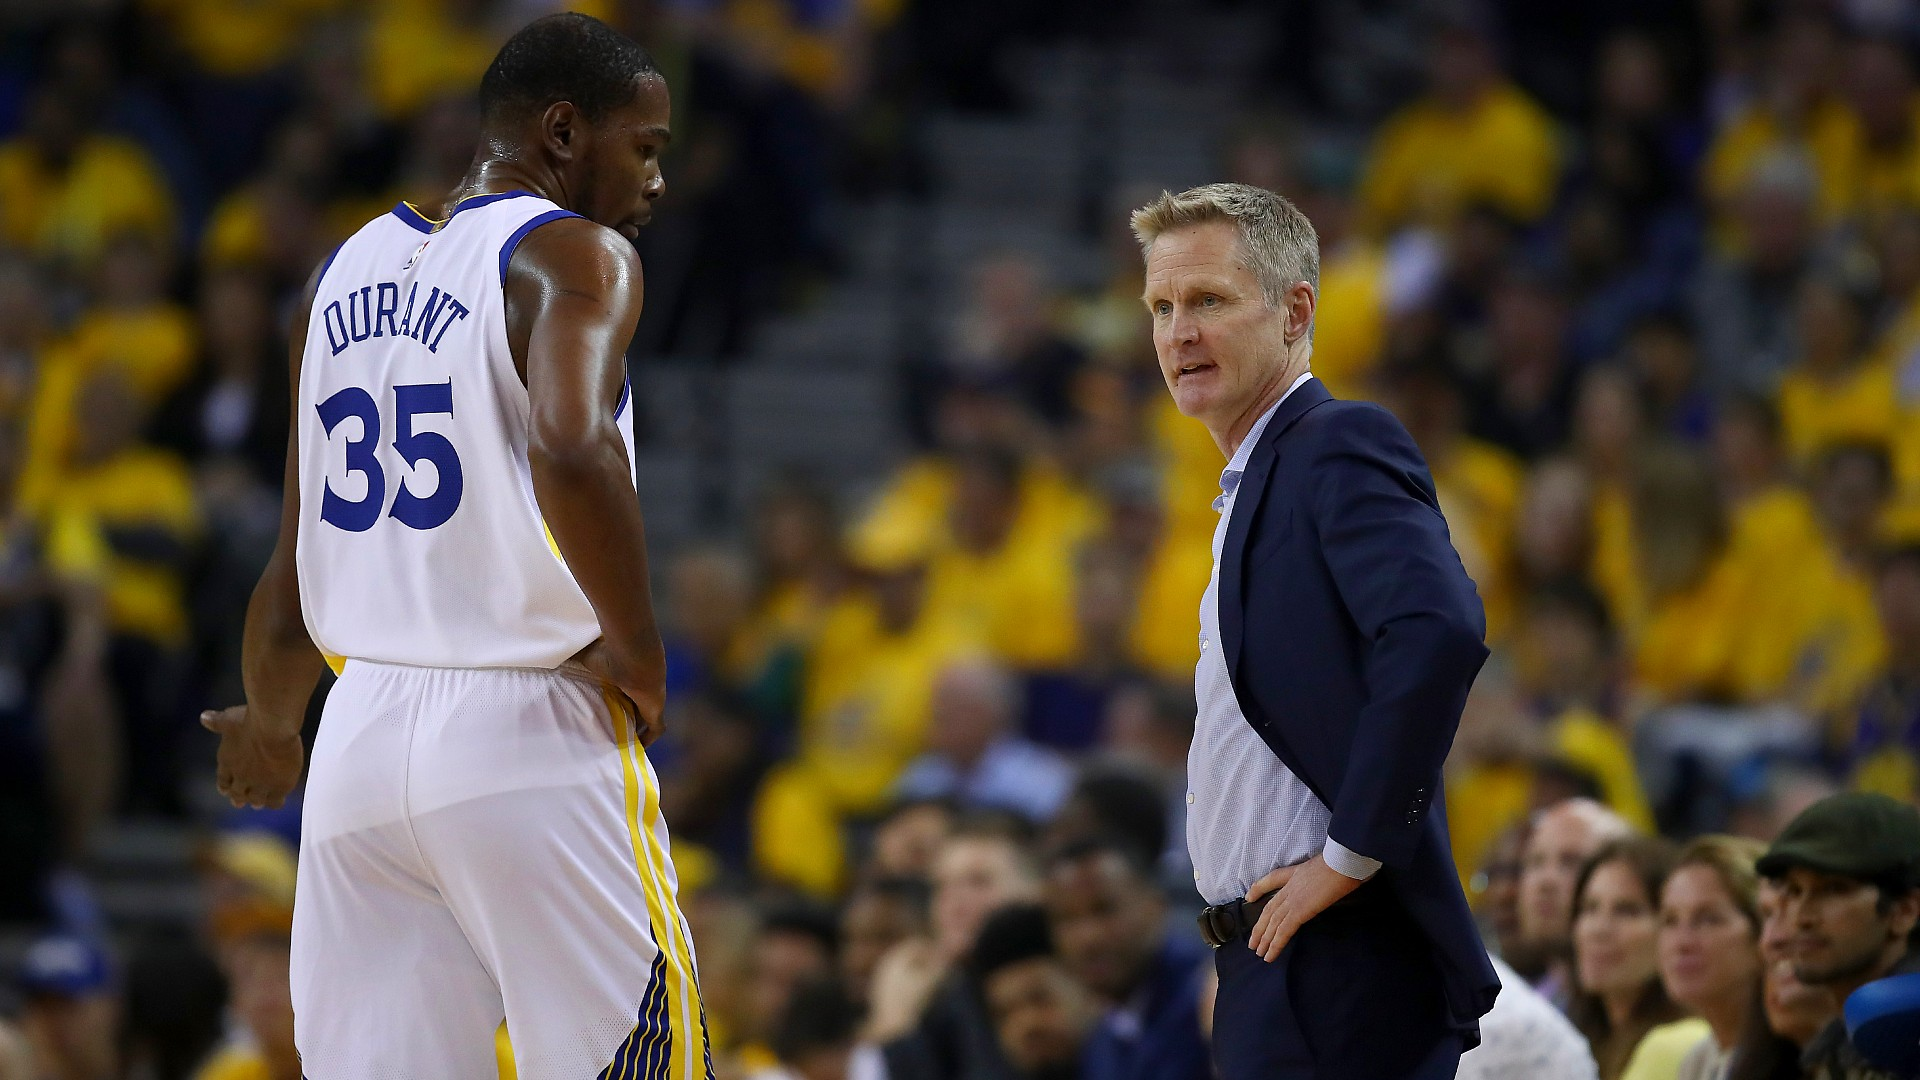 Warriors' Steve Kerr 'angry' over 'irresponsible' media tweet that appeared to stir Kevin Durant drama